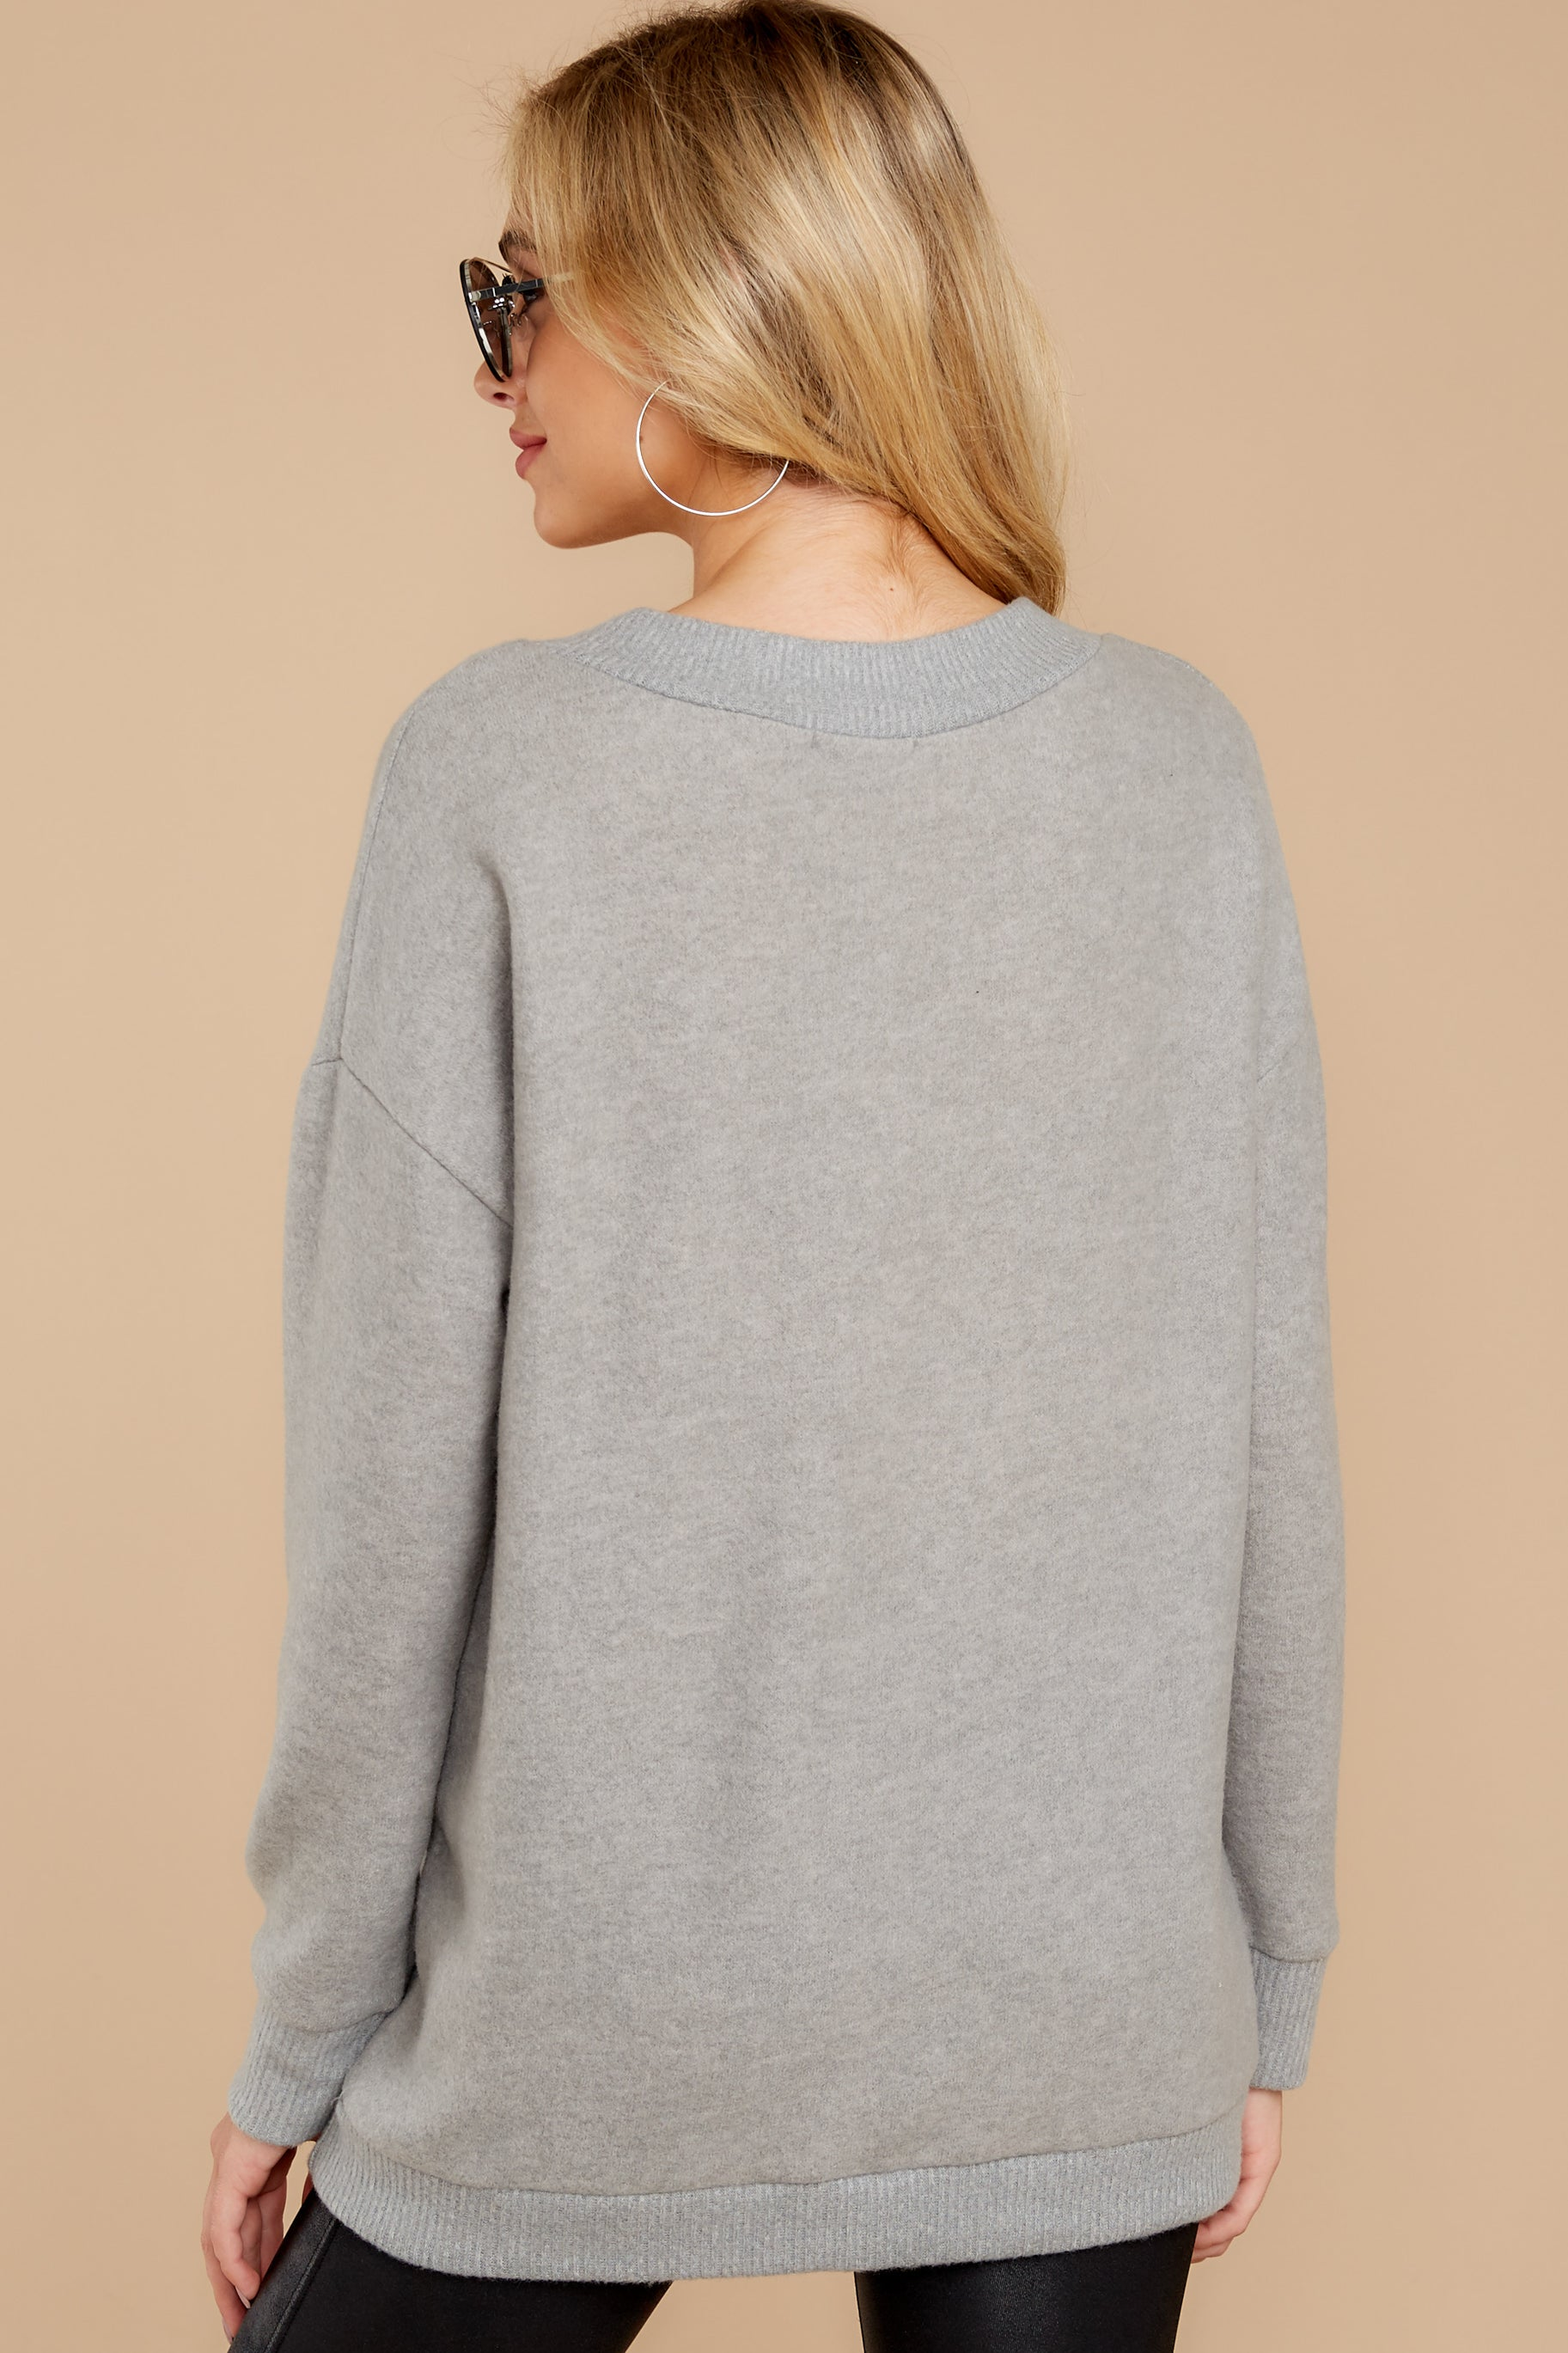 8 Soon Enough Heather Grey Sweater at reddressboutique.com